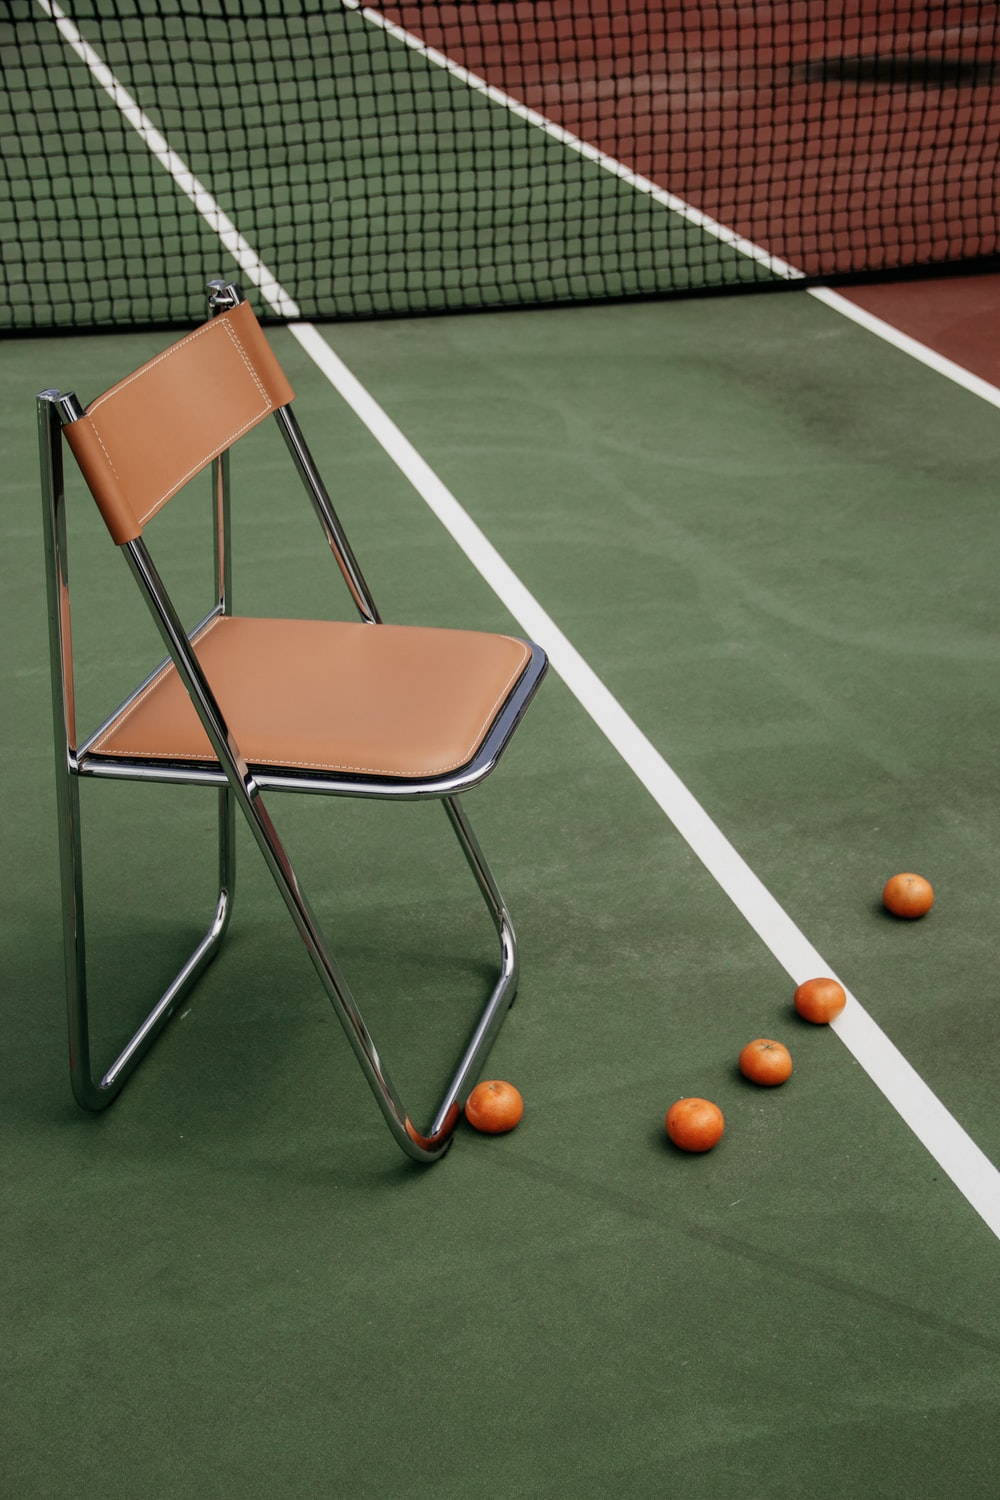 brown leather padded armless chair on tennis court